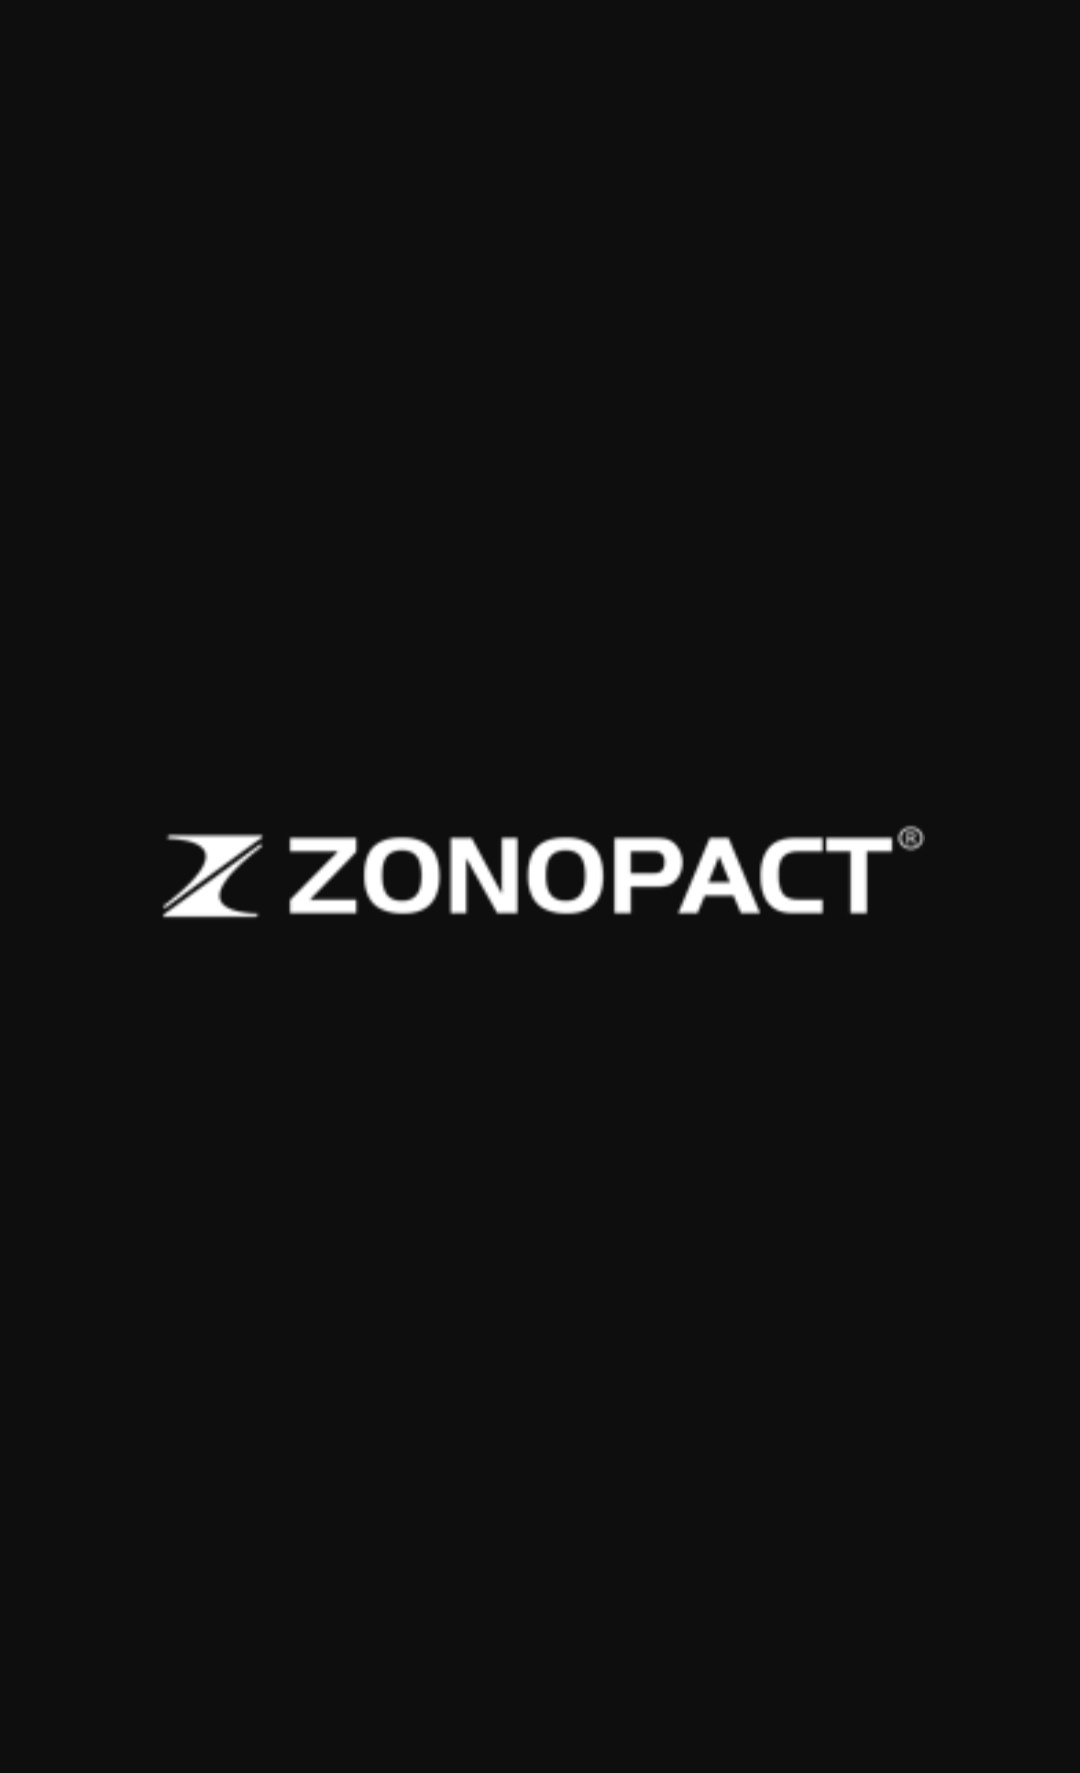 Zonopact Incorporation Jobs in India